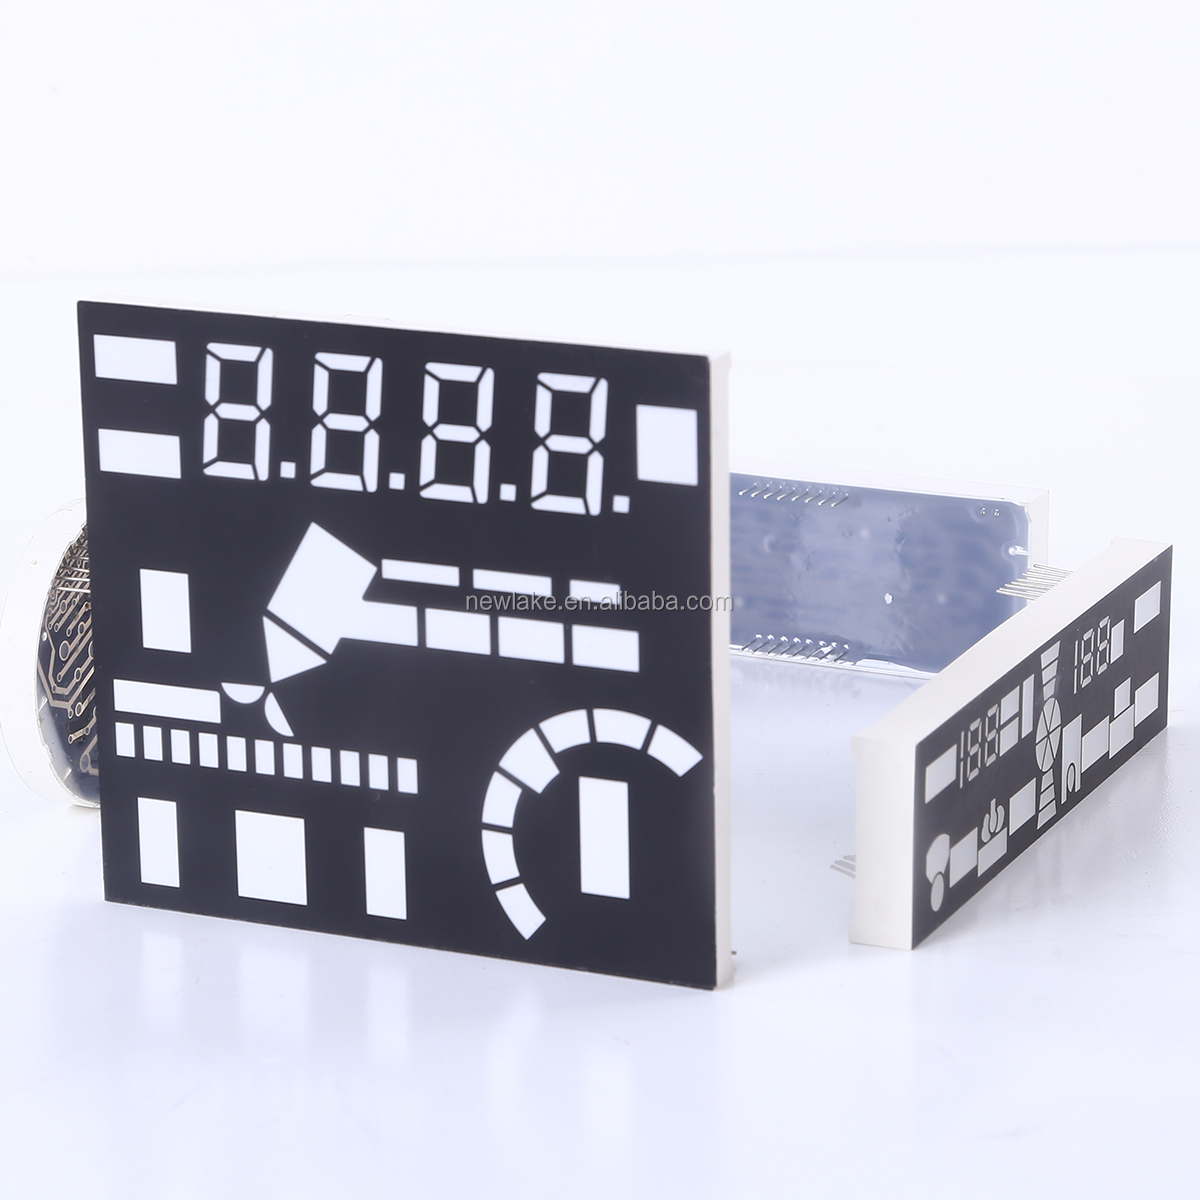 Hot sell   electronics appliances  voltmeter & ammeter LED Display